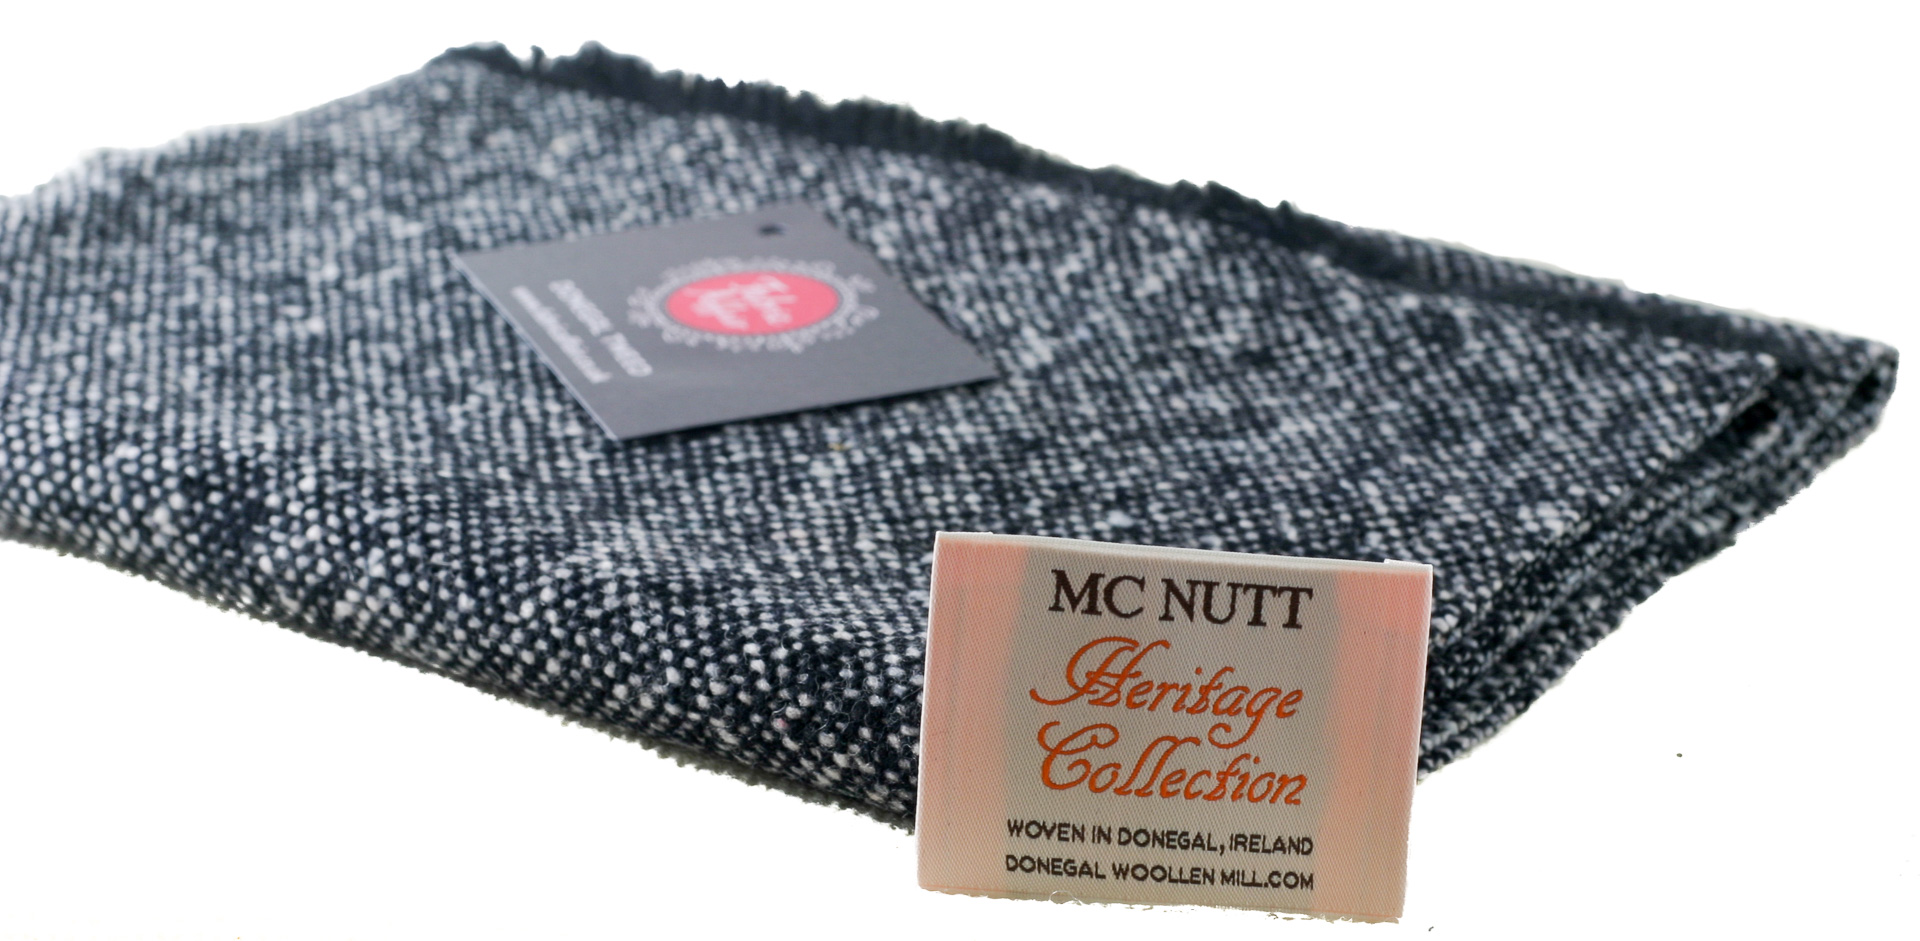 Donegal Tweed by Fabric Affair: Heritage Collection, Black and White.